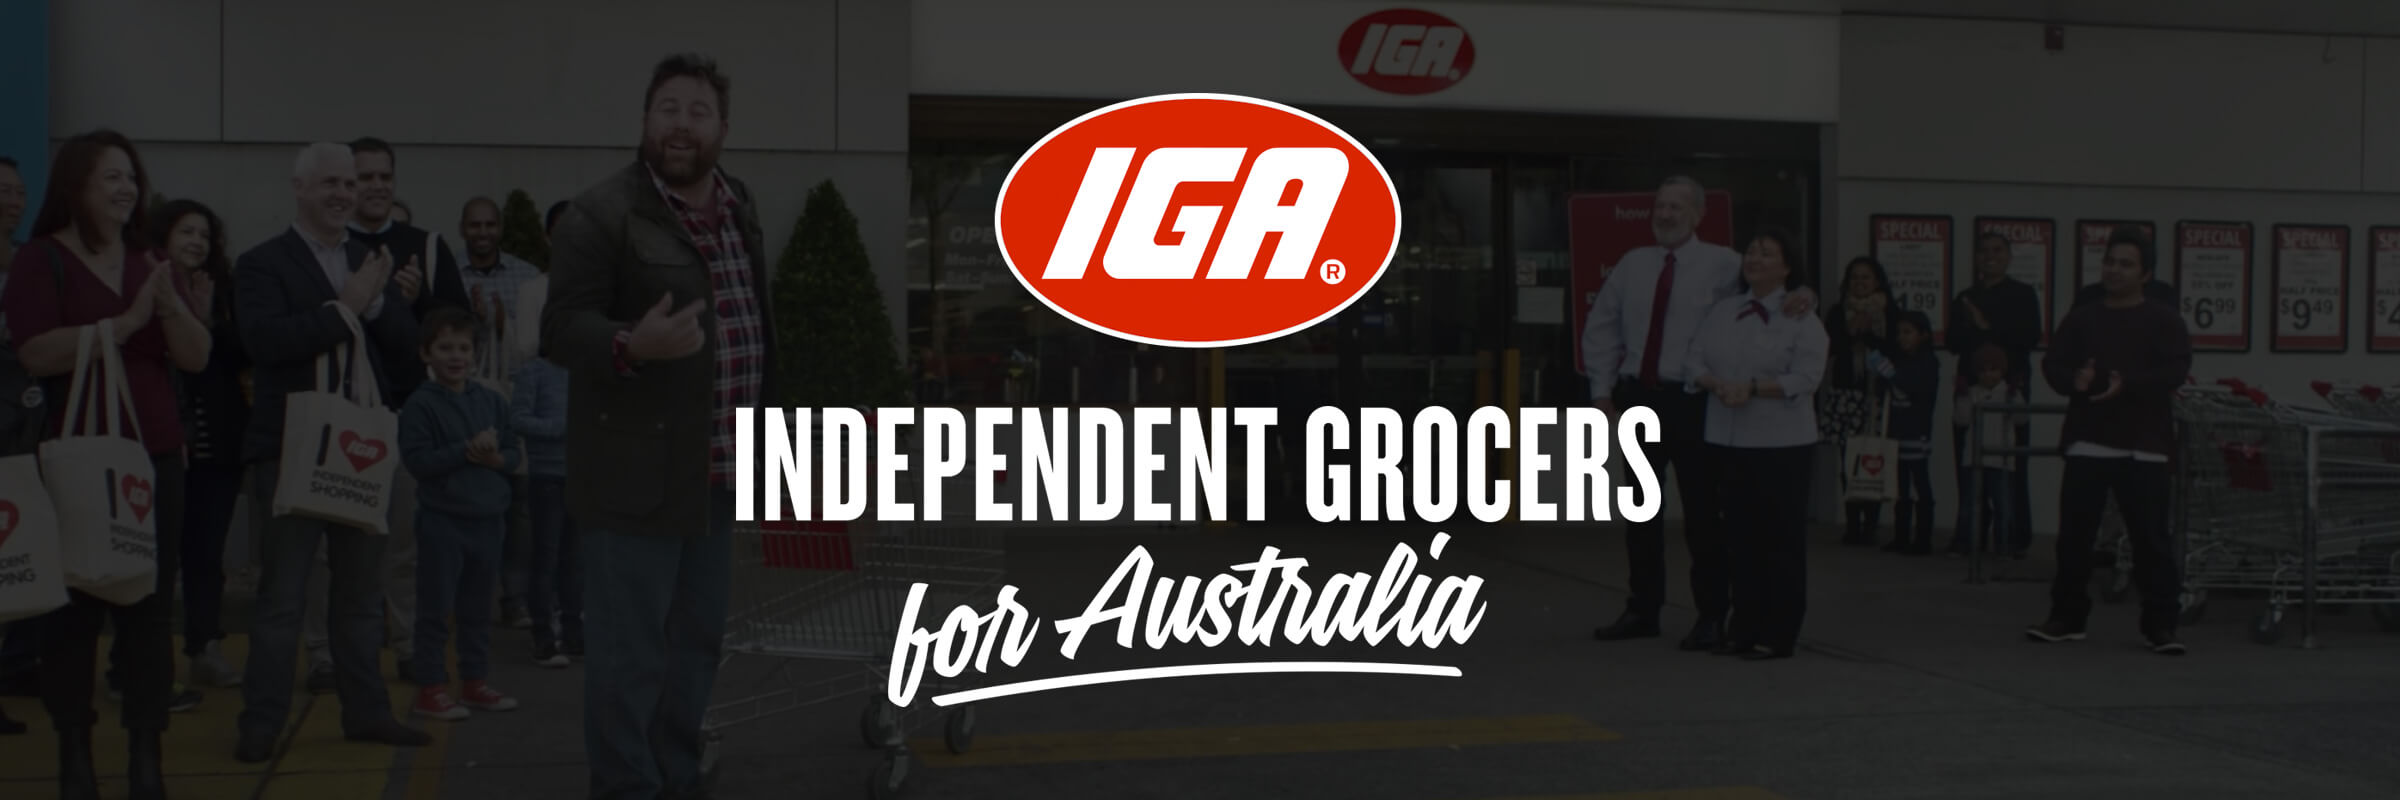 About IGA - Independent Grocers for Australia